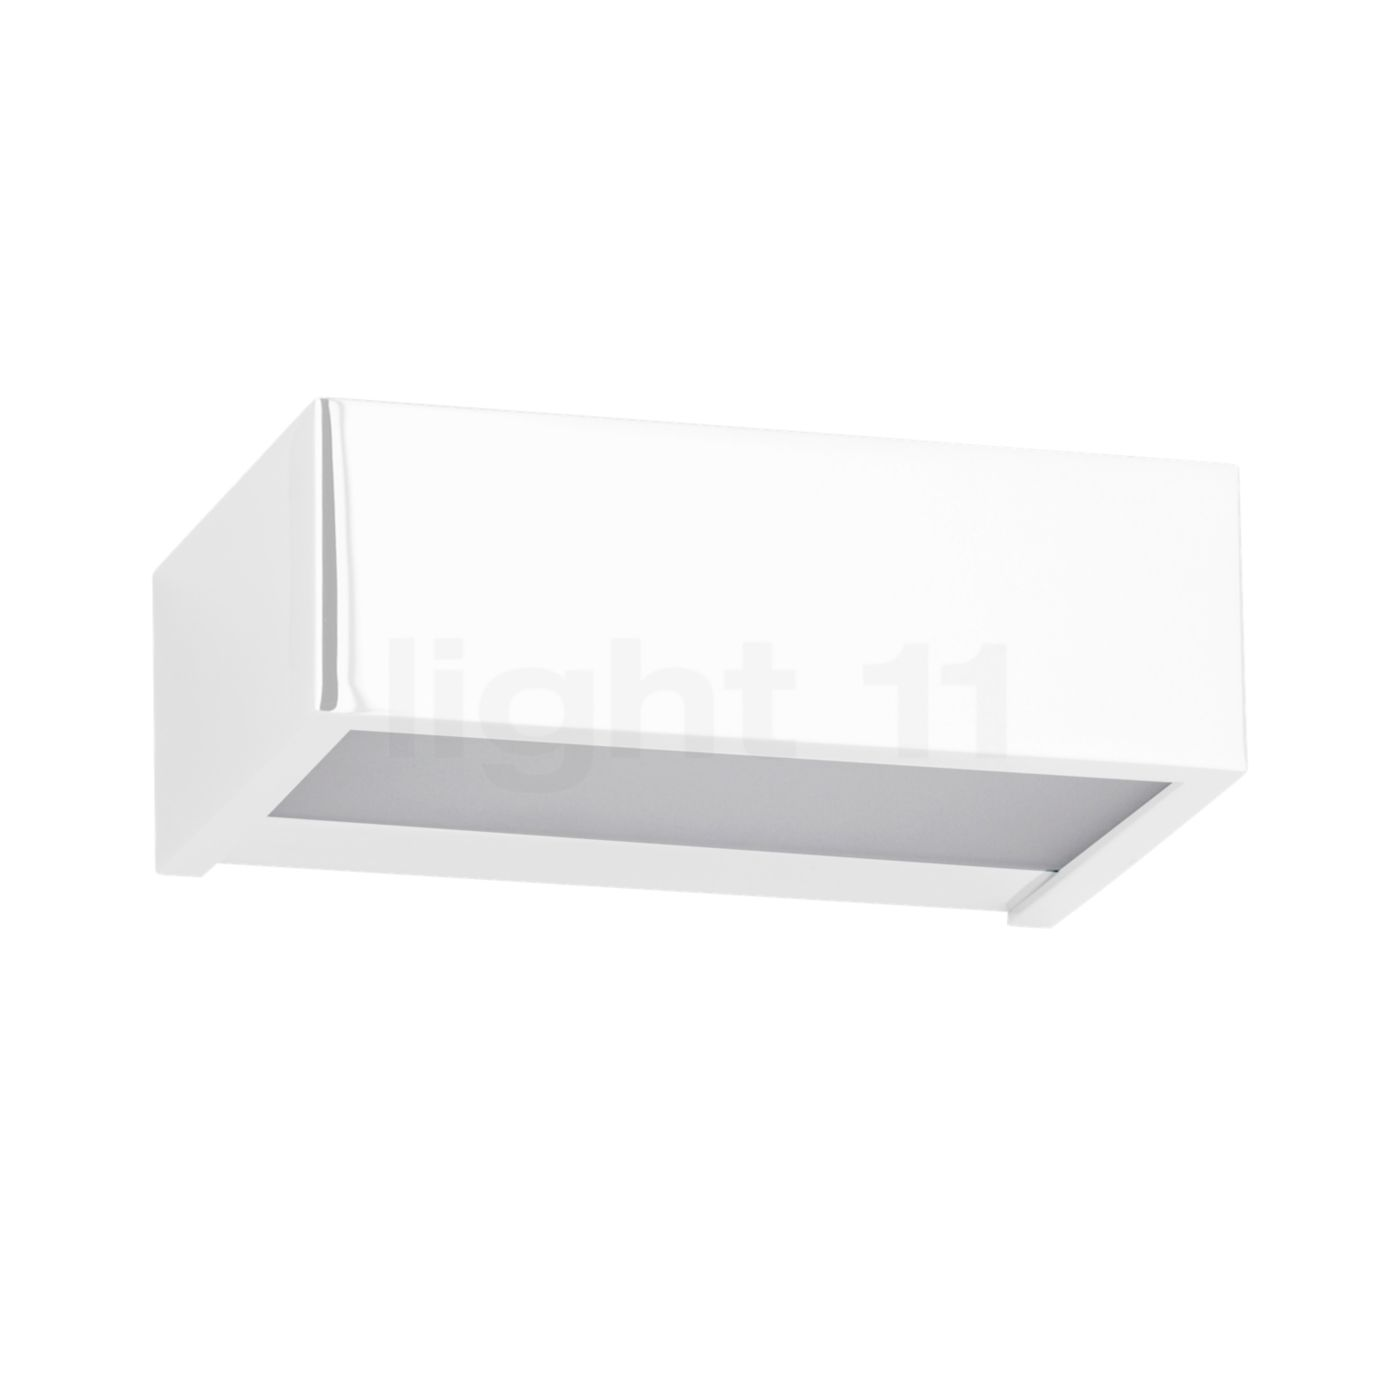 Buy bega 55930 recessed ceiling light led at light11 mozeypictures Images